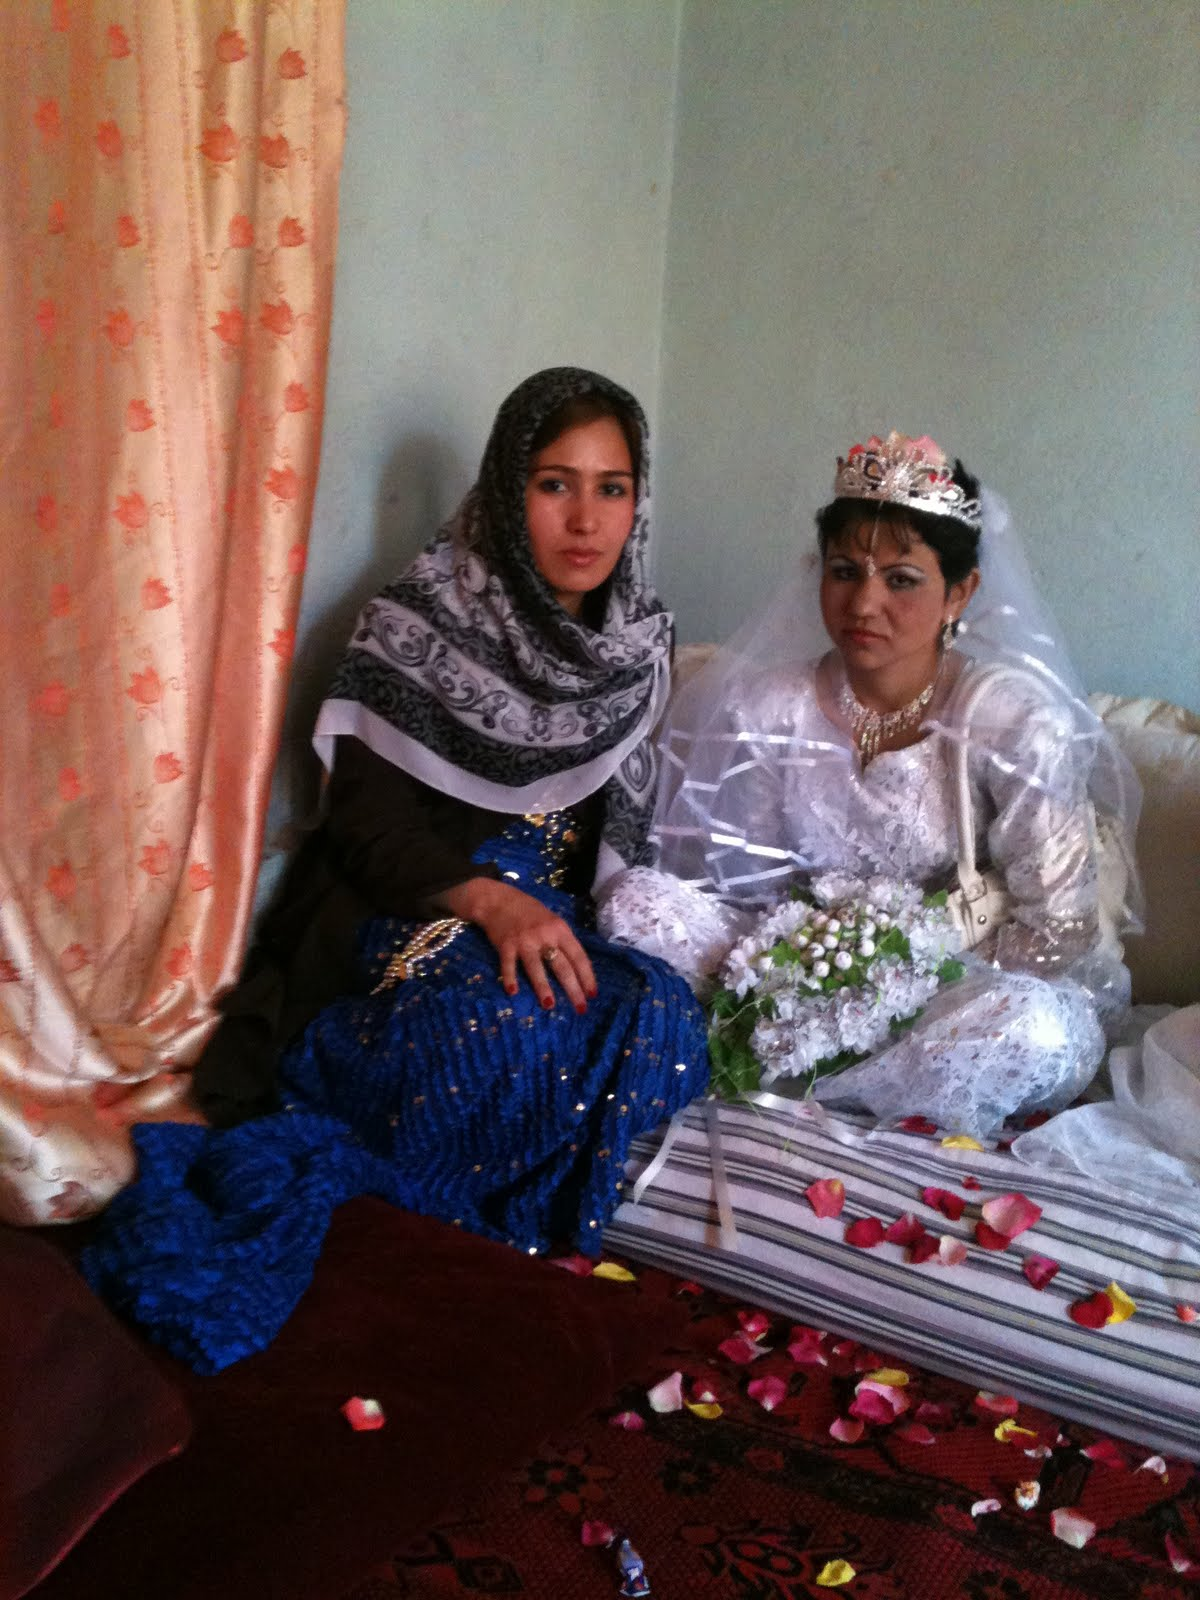 Afghan Wedding Traditions http://glynstrong.blogspot.com/2010/08/afghan-wedding-film-by-glyn-strong.html